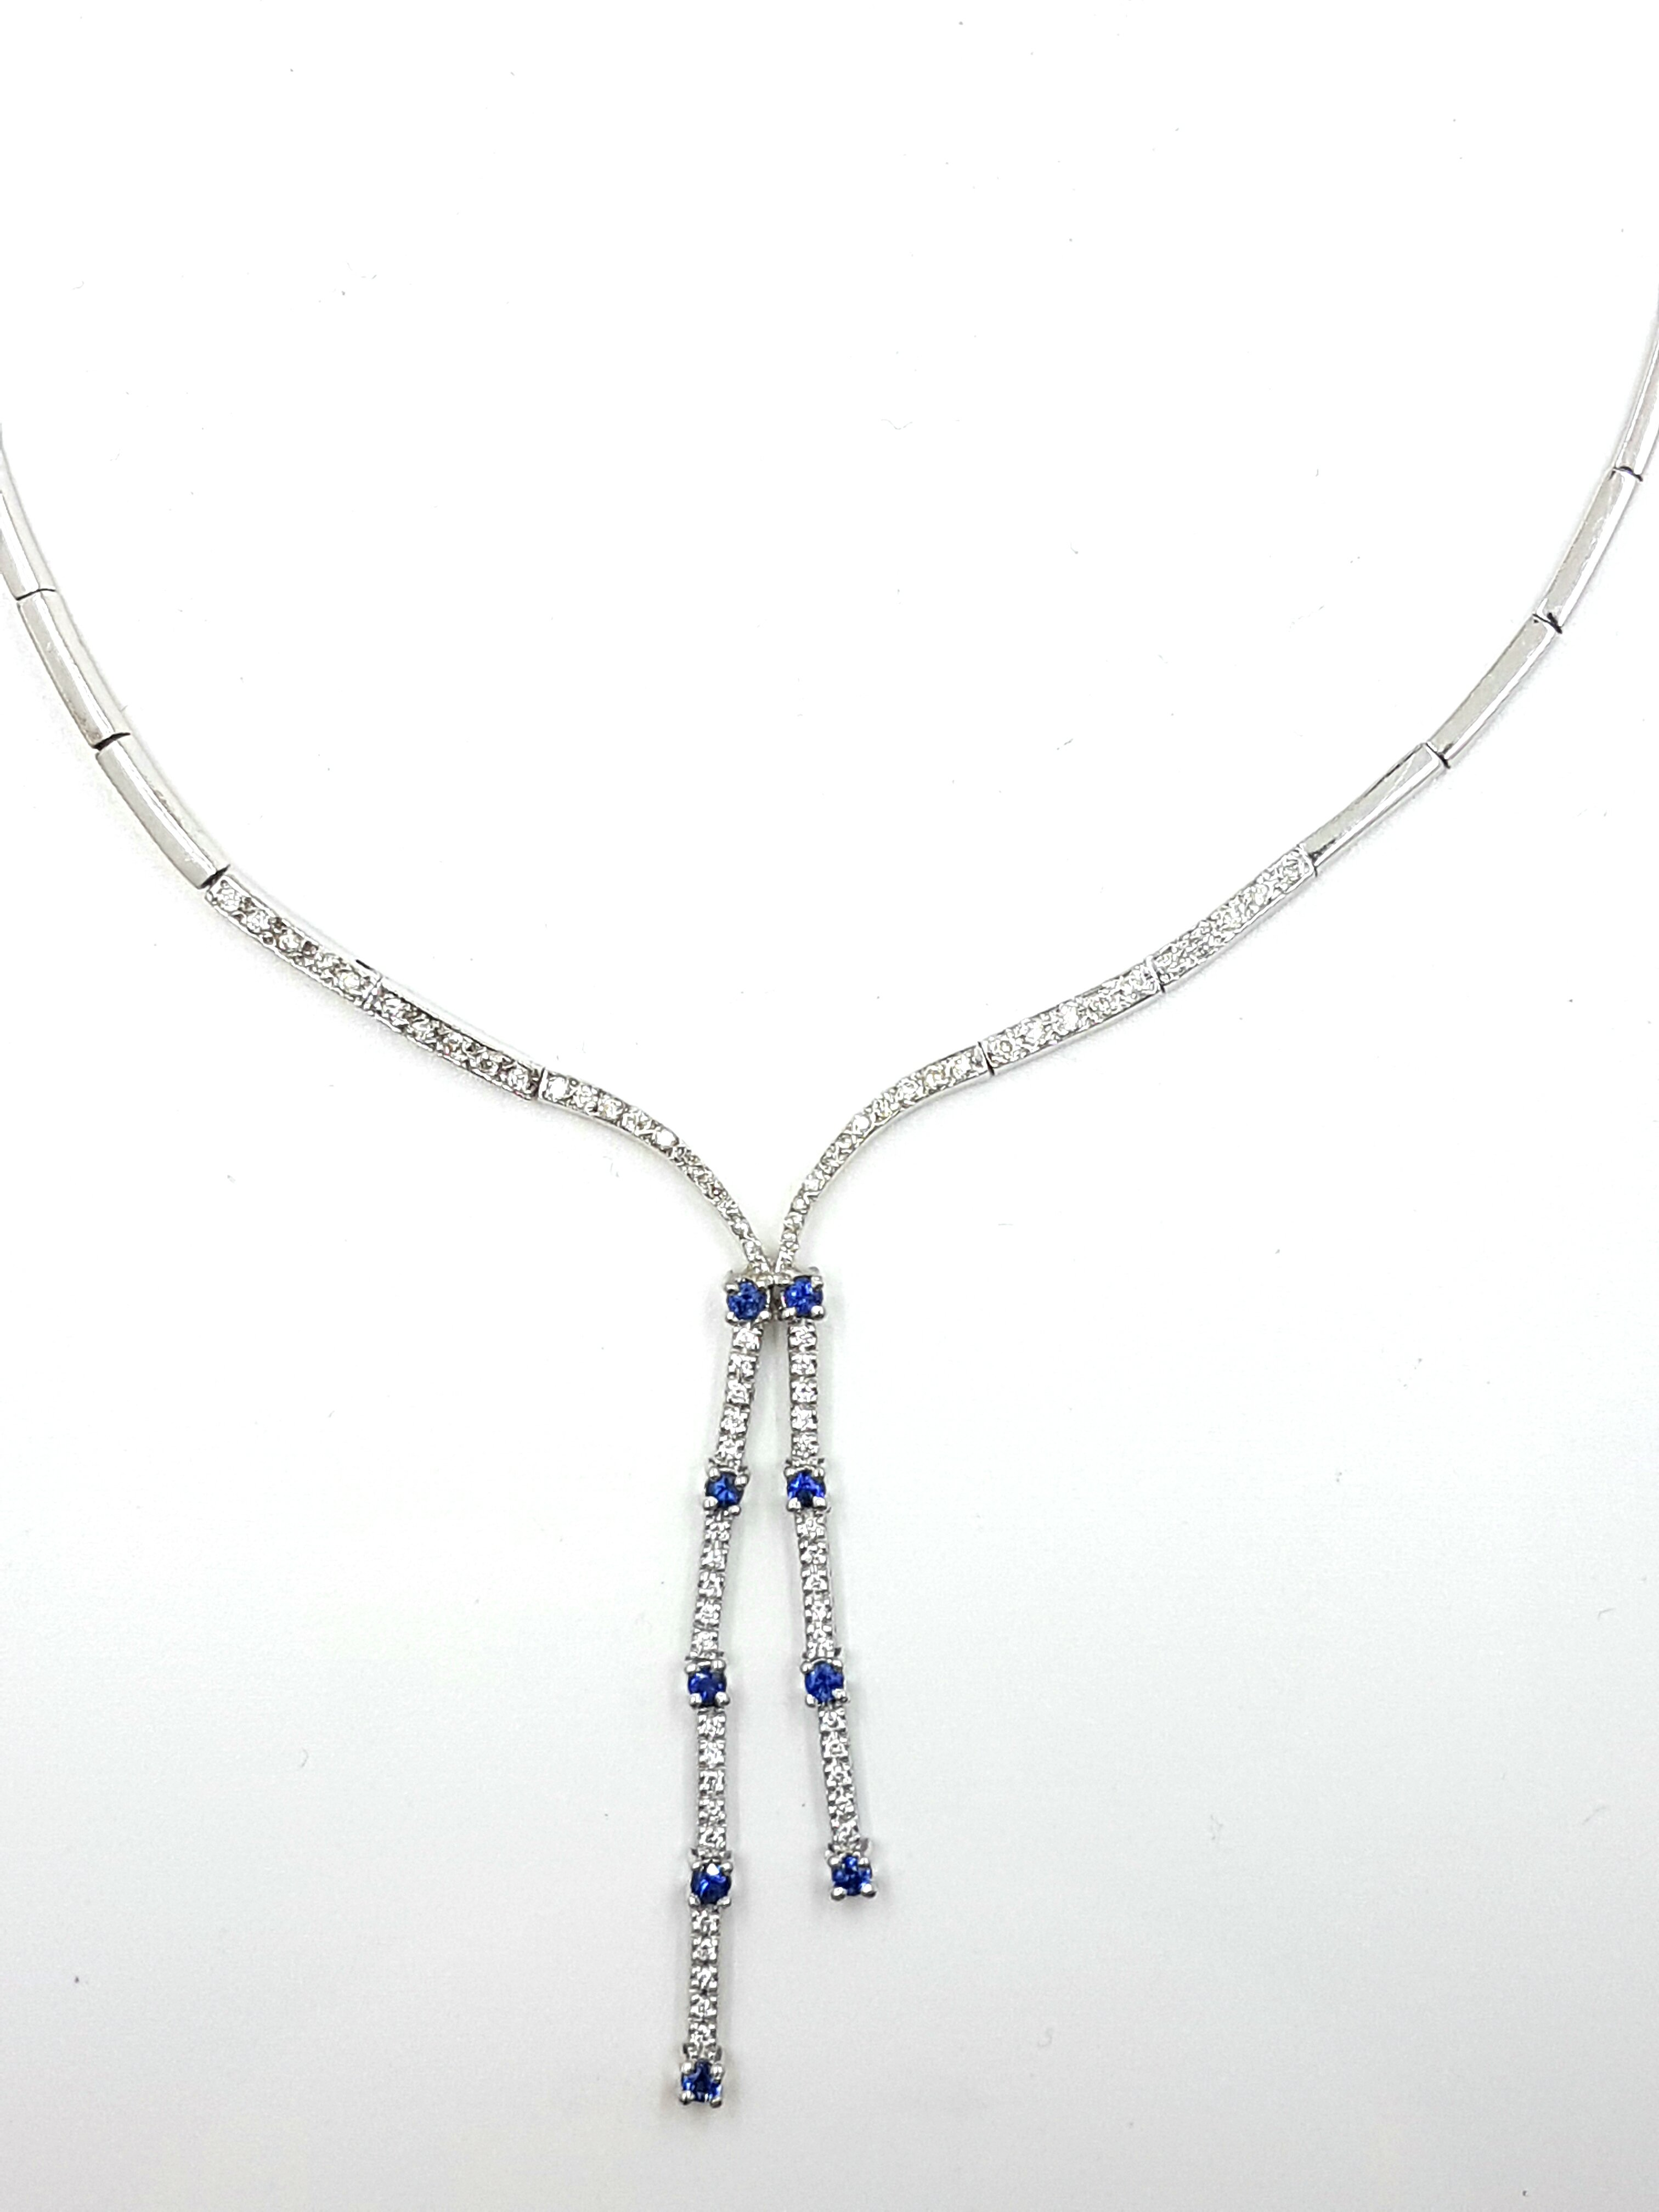 14K White Gold Diamonds: 0.82ct / Sapphires: 0.50ct Regular Price $9500 SALE $1995 Ref: NN207